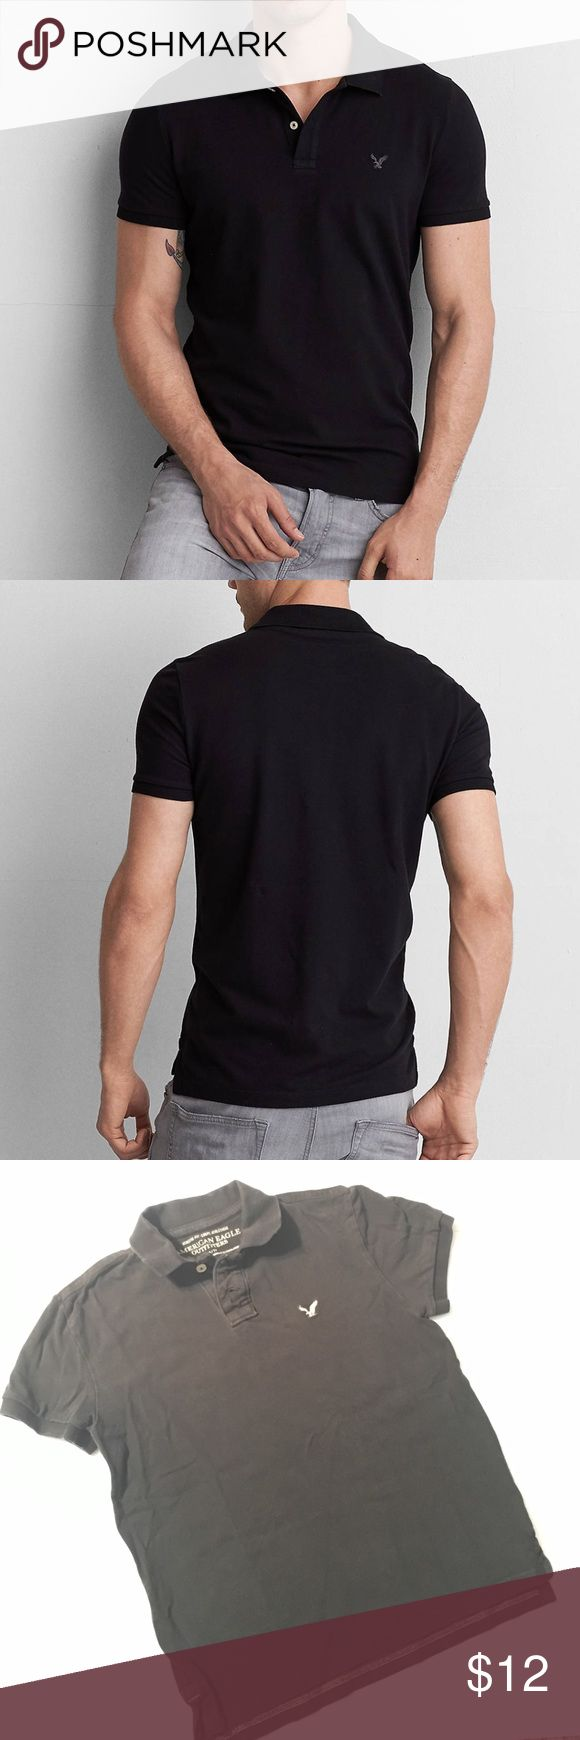 AEO Black Athletic Fit Polo Shirt Stretch pique for comfort & ease of movement Classic fit Two-button polo placket Ribbed collar and armbands Vented hem Embroidered icon at the chest  100% Cotton. In good used condition with no holes or rips.   *15% off bundles *No trades *Feel free to make an offer *Thank you American Eagle Outfitters Shirts Polos